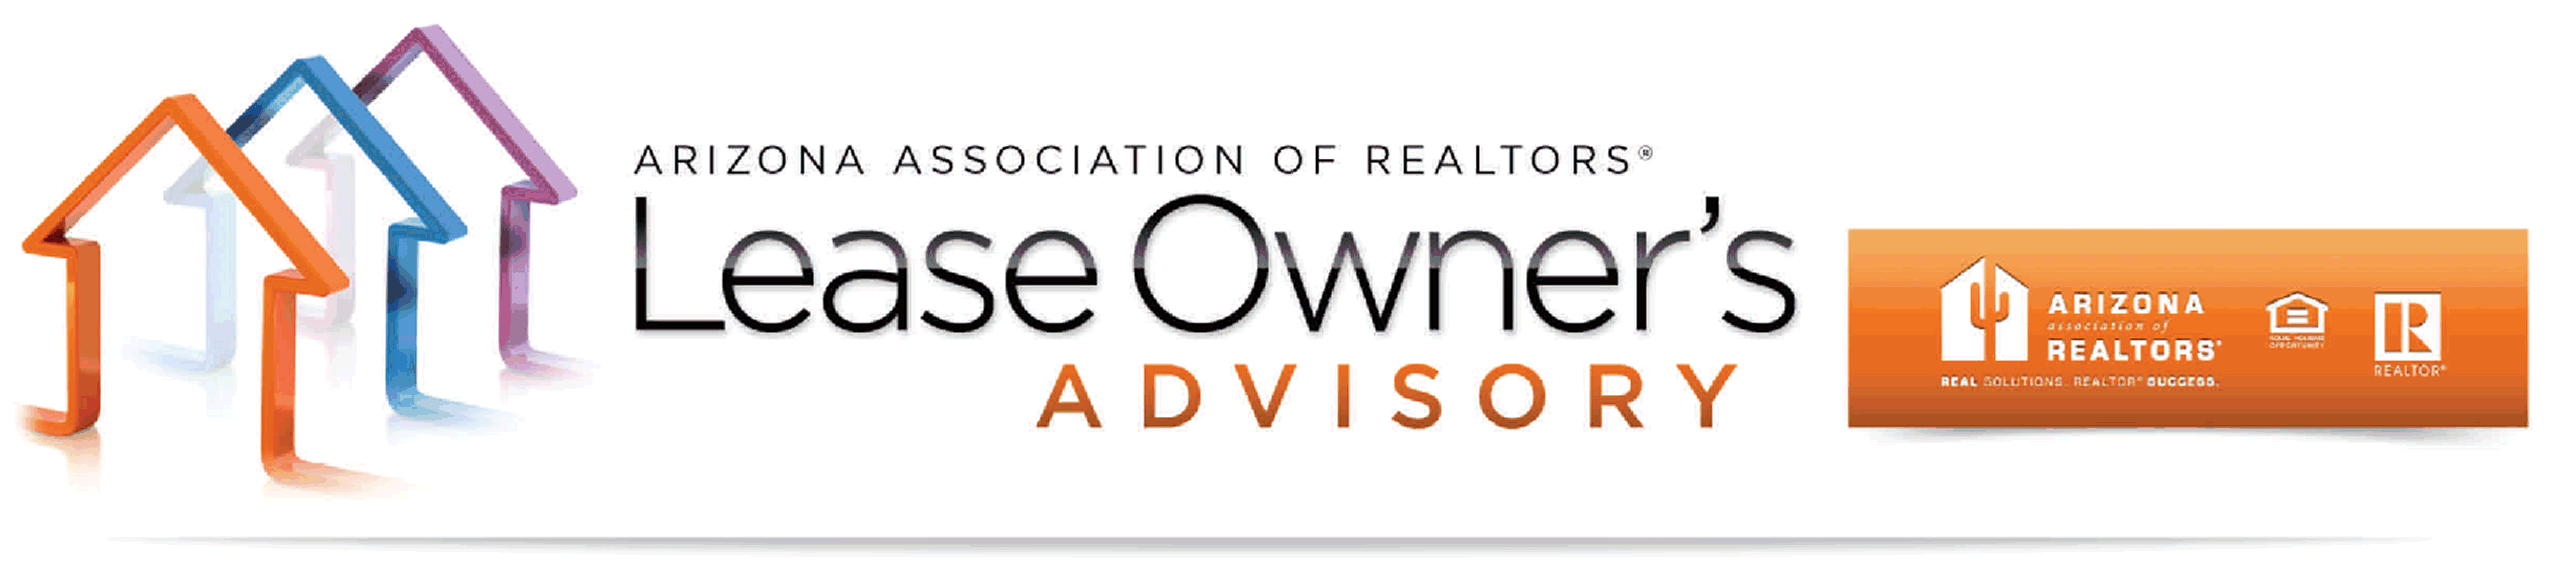 The Lease Owner s Advisory is a resource provided by the Arizona Association of REALTORS Residential Rentals are required to comply with the Arizona Residential Landlord/Tenant Act: http://www.